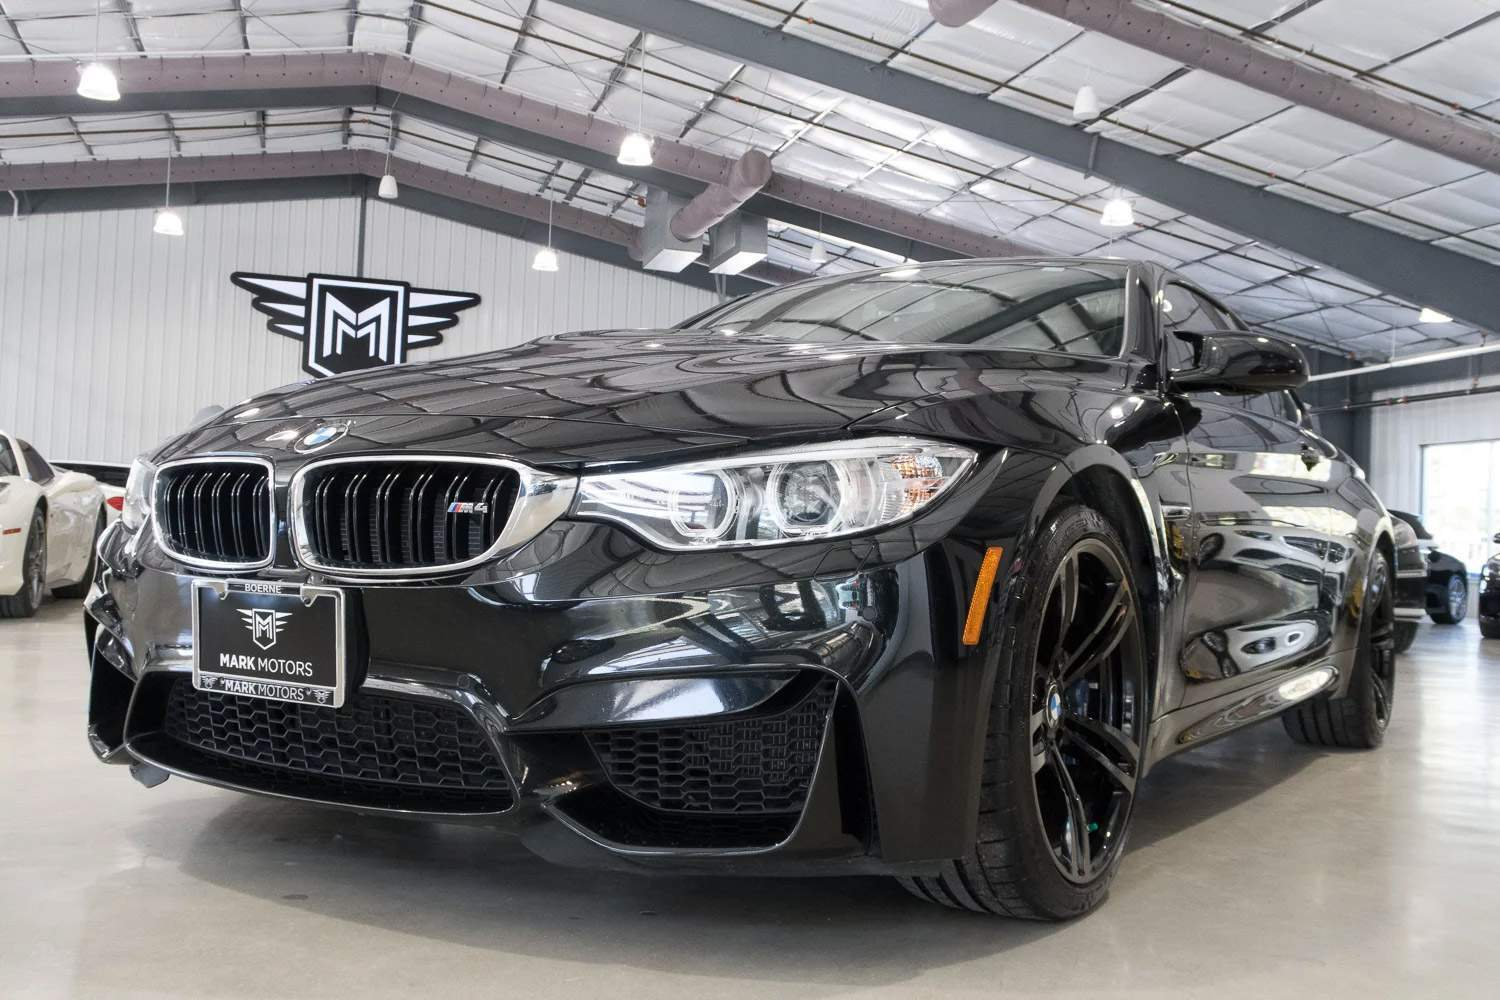 2015 BMW M4 For Sale in Boerne Tx